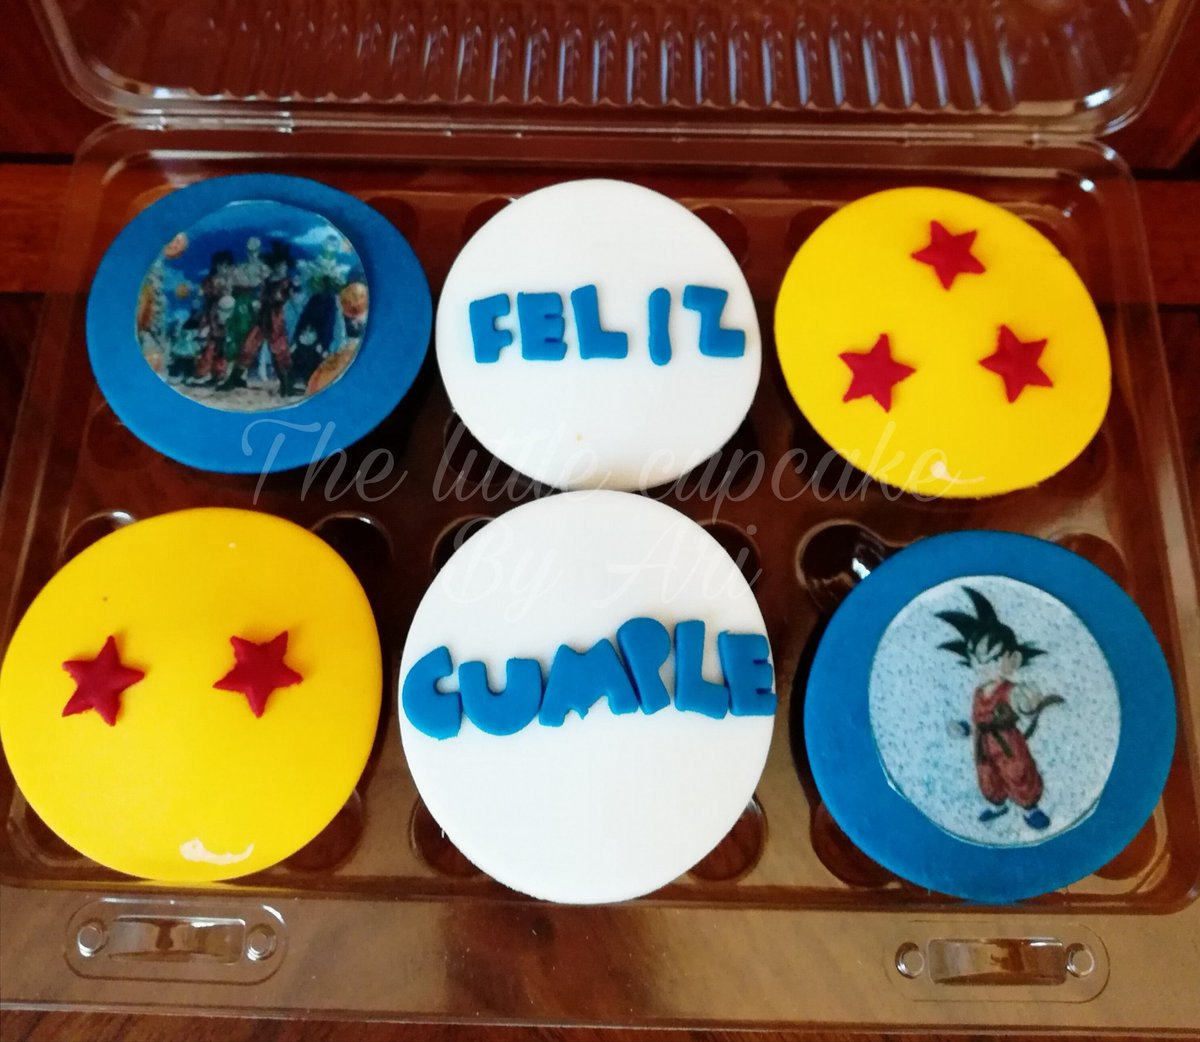 The Little Cupcake On Twitter Cupcakes Dragon Ball